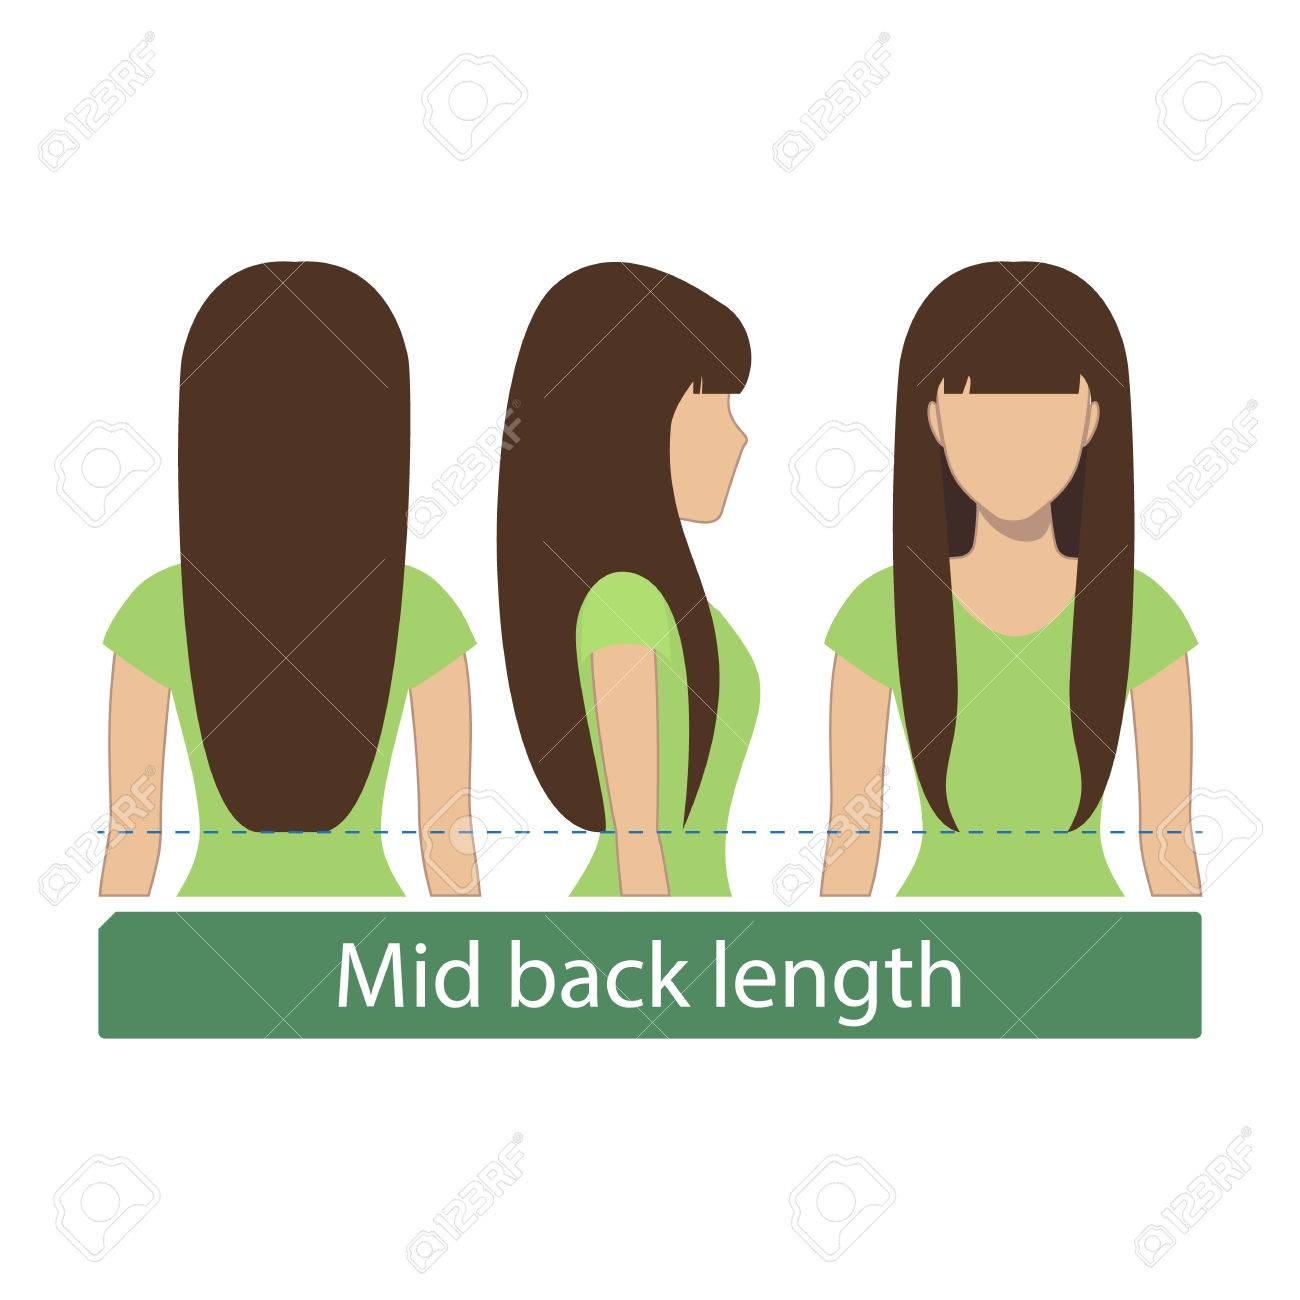 Hair Length For Haircuts And Hairstyles Mid Back Length Vector